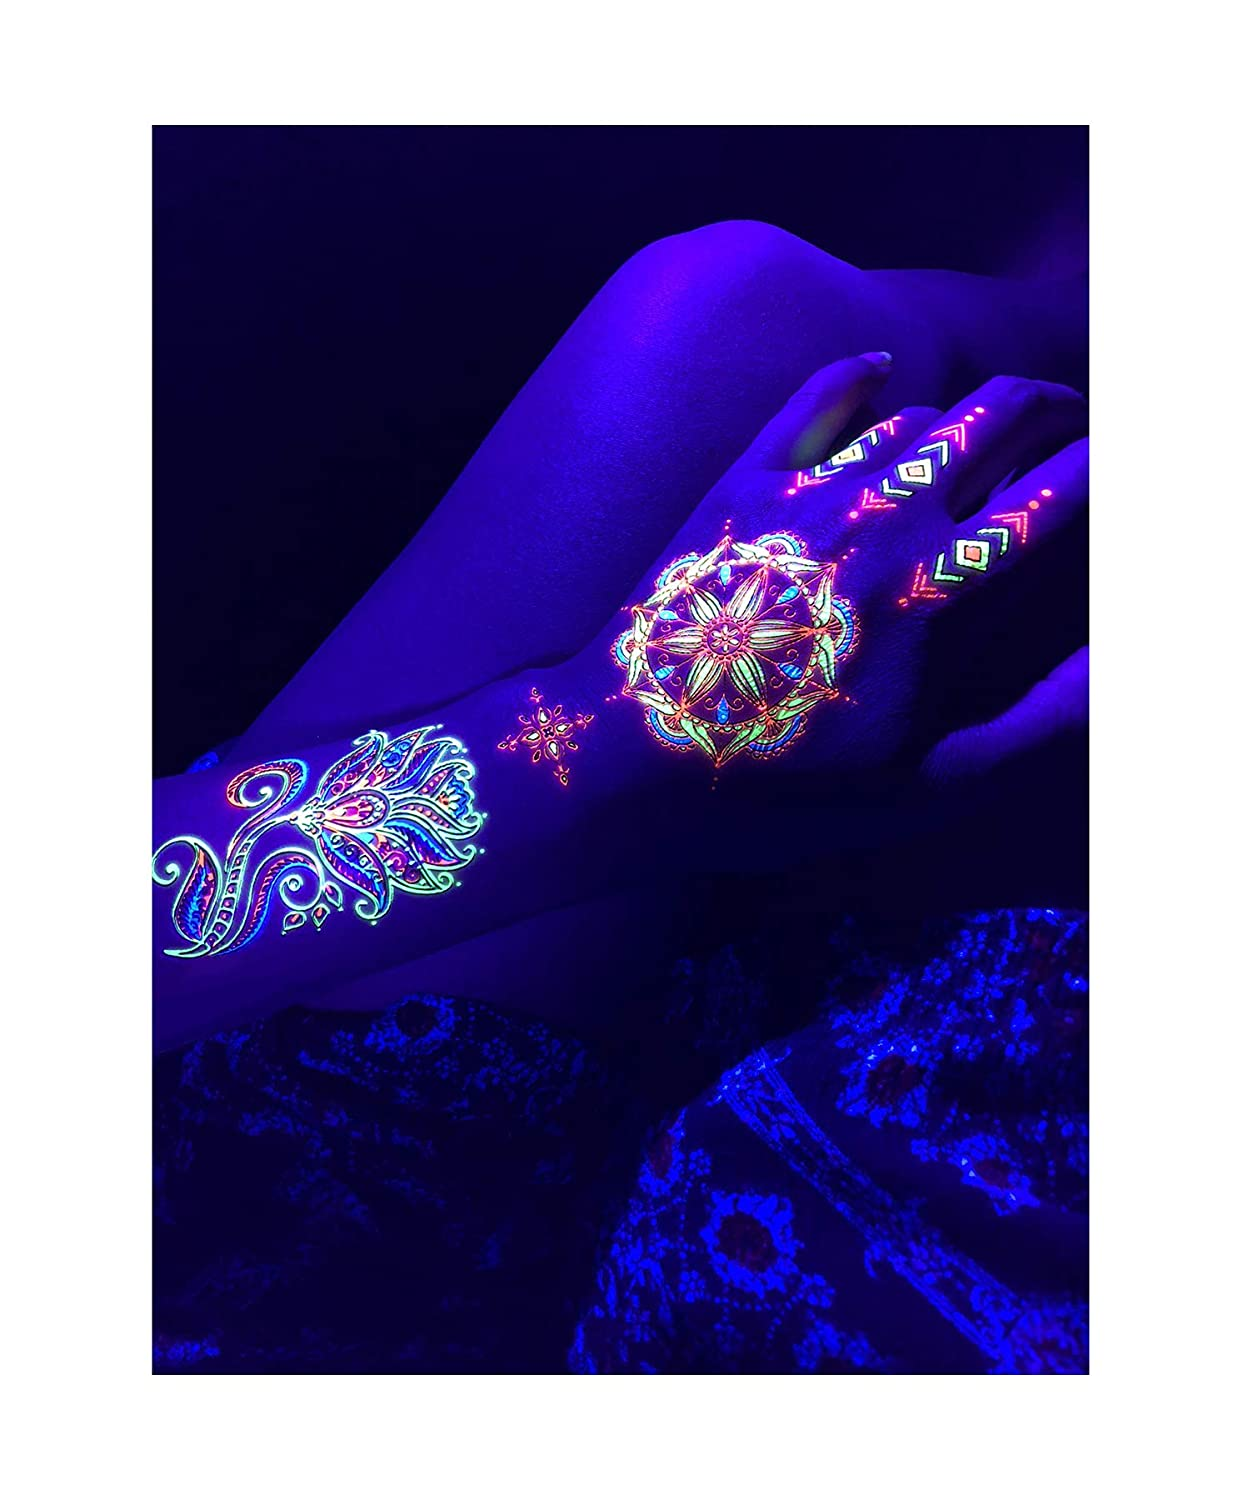 d'IRIS studio Glow in The Dark Party Blacklight Tattoos -Temporary Rave UV Neon Night Lotus Flower Mandala Decorations Birthday Supplies Favors Accessories Sticks Nightclub Dance Rainbow Festival